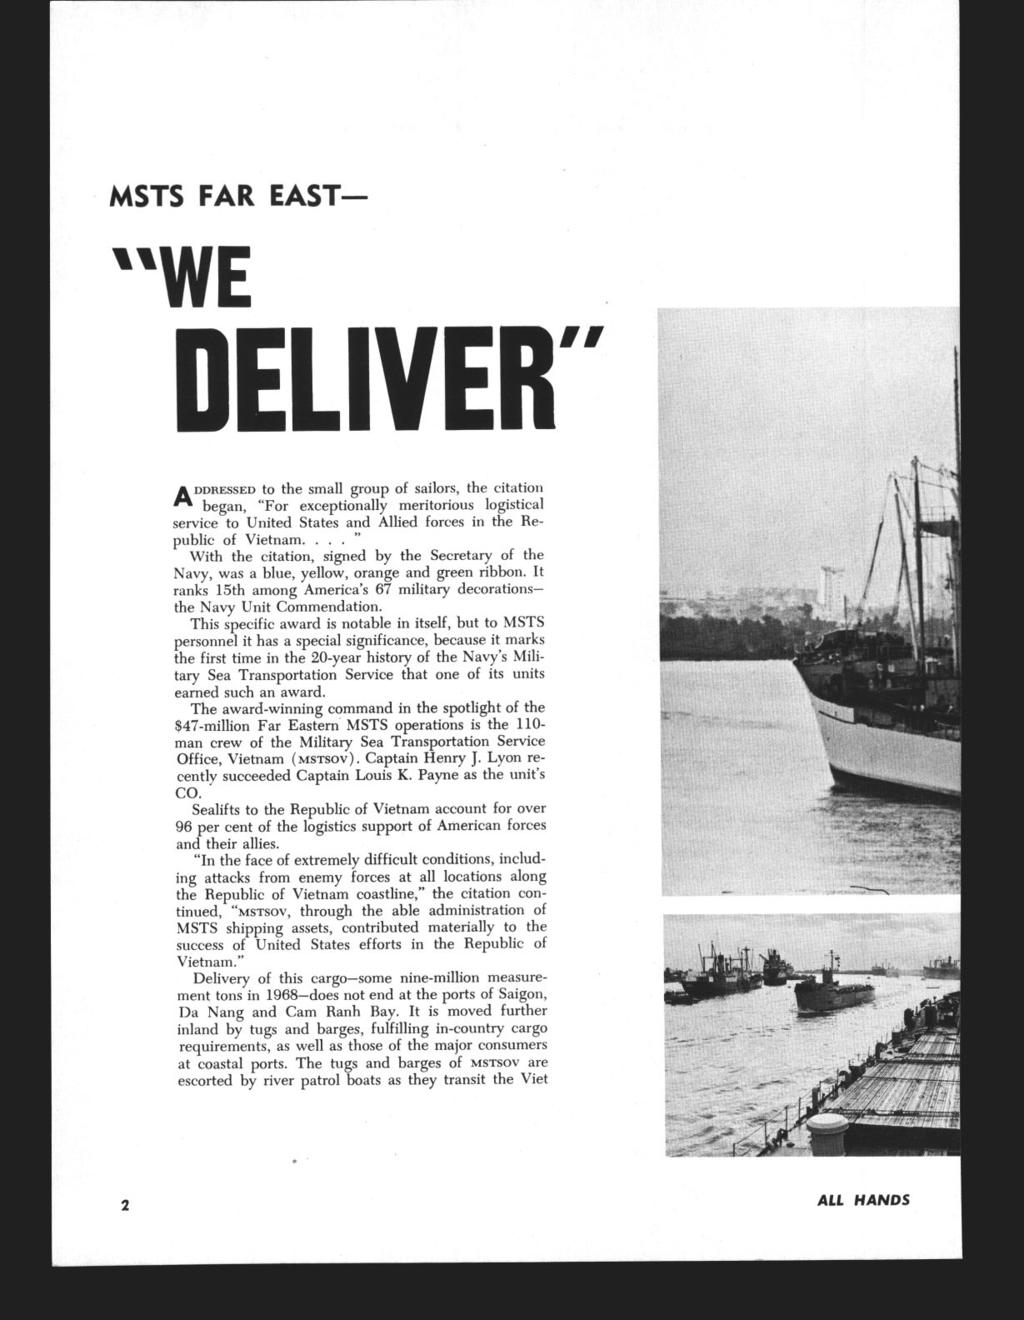 MSTS FAR EAST- WE DELIVER ADDRESSED to the small group of sailors, the citation began, For exceptionally meritorious logistical service to United States and Allied forces in the Re- public of Vietnam.